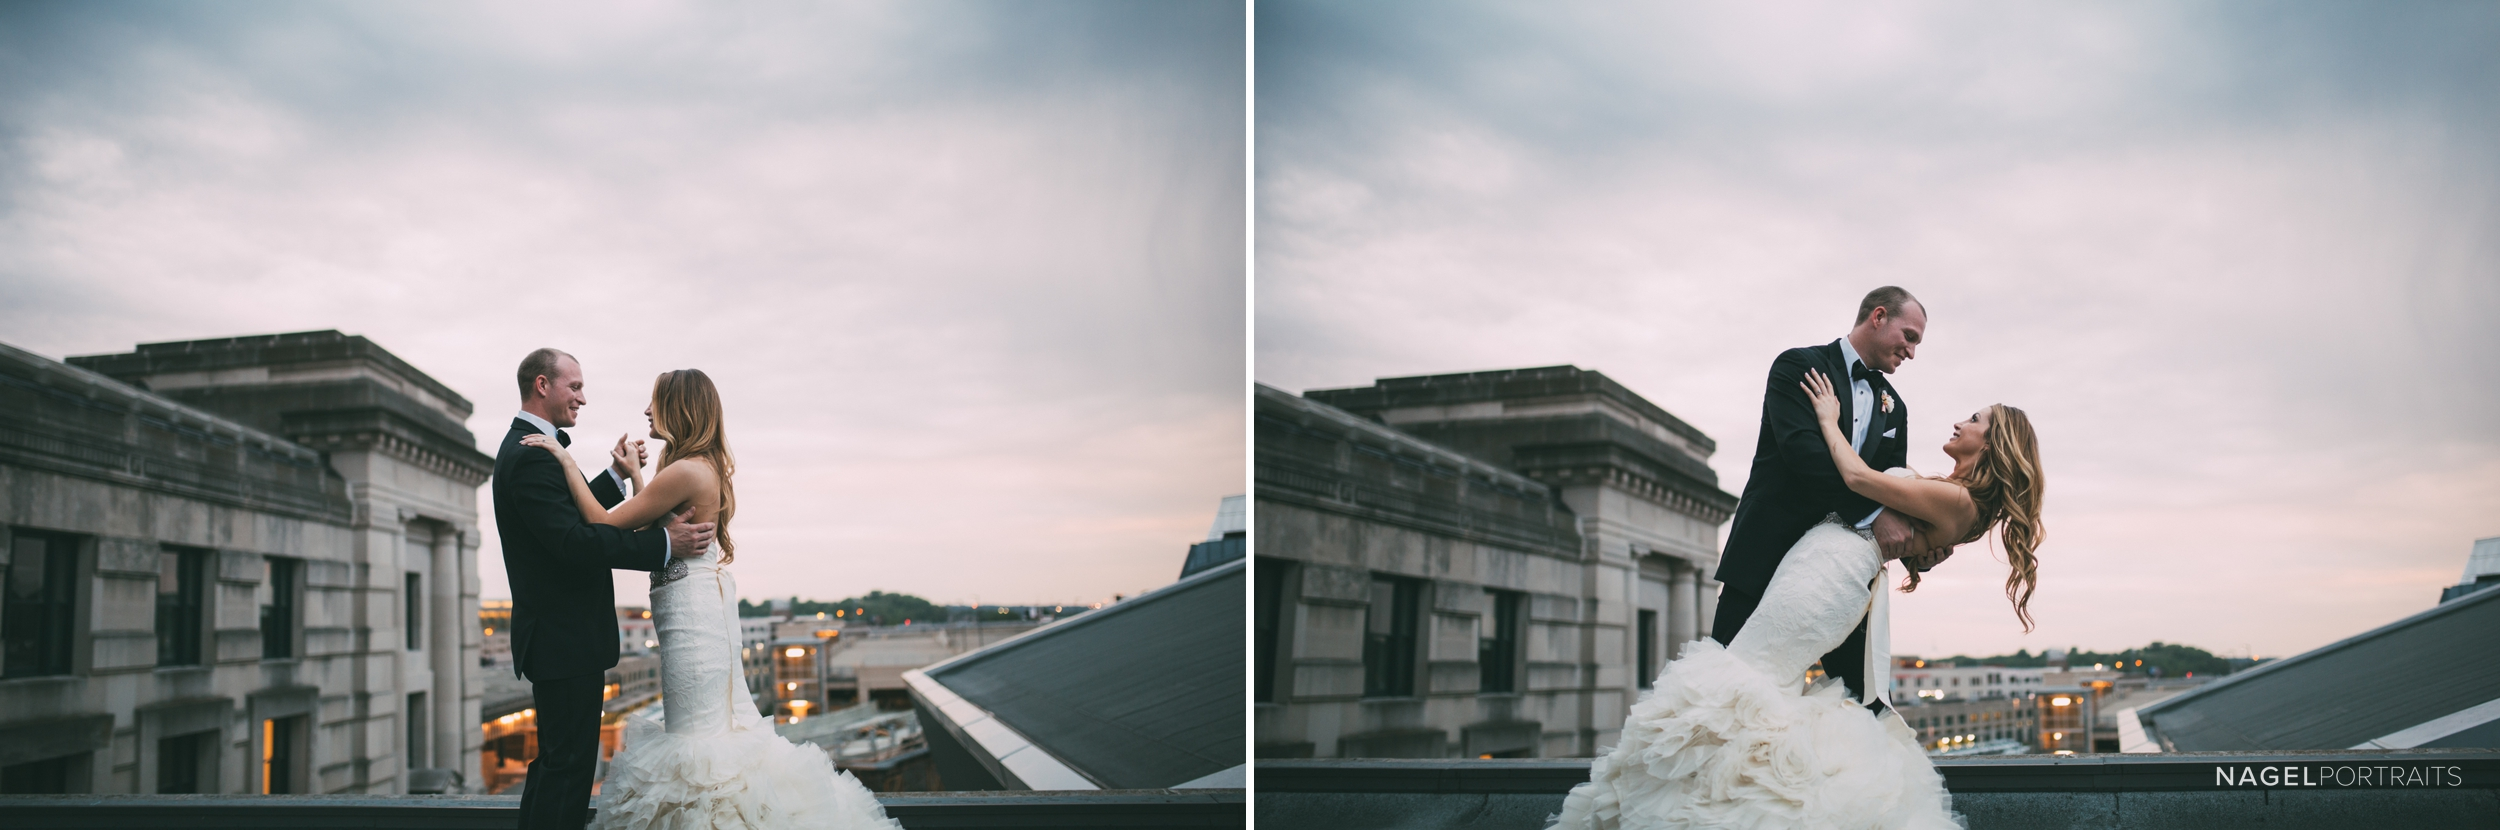 bride and groom dance on rooftop in the evening in kansas city on their wedding day